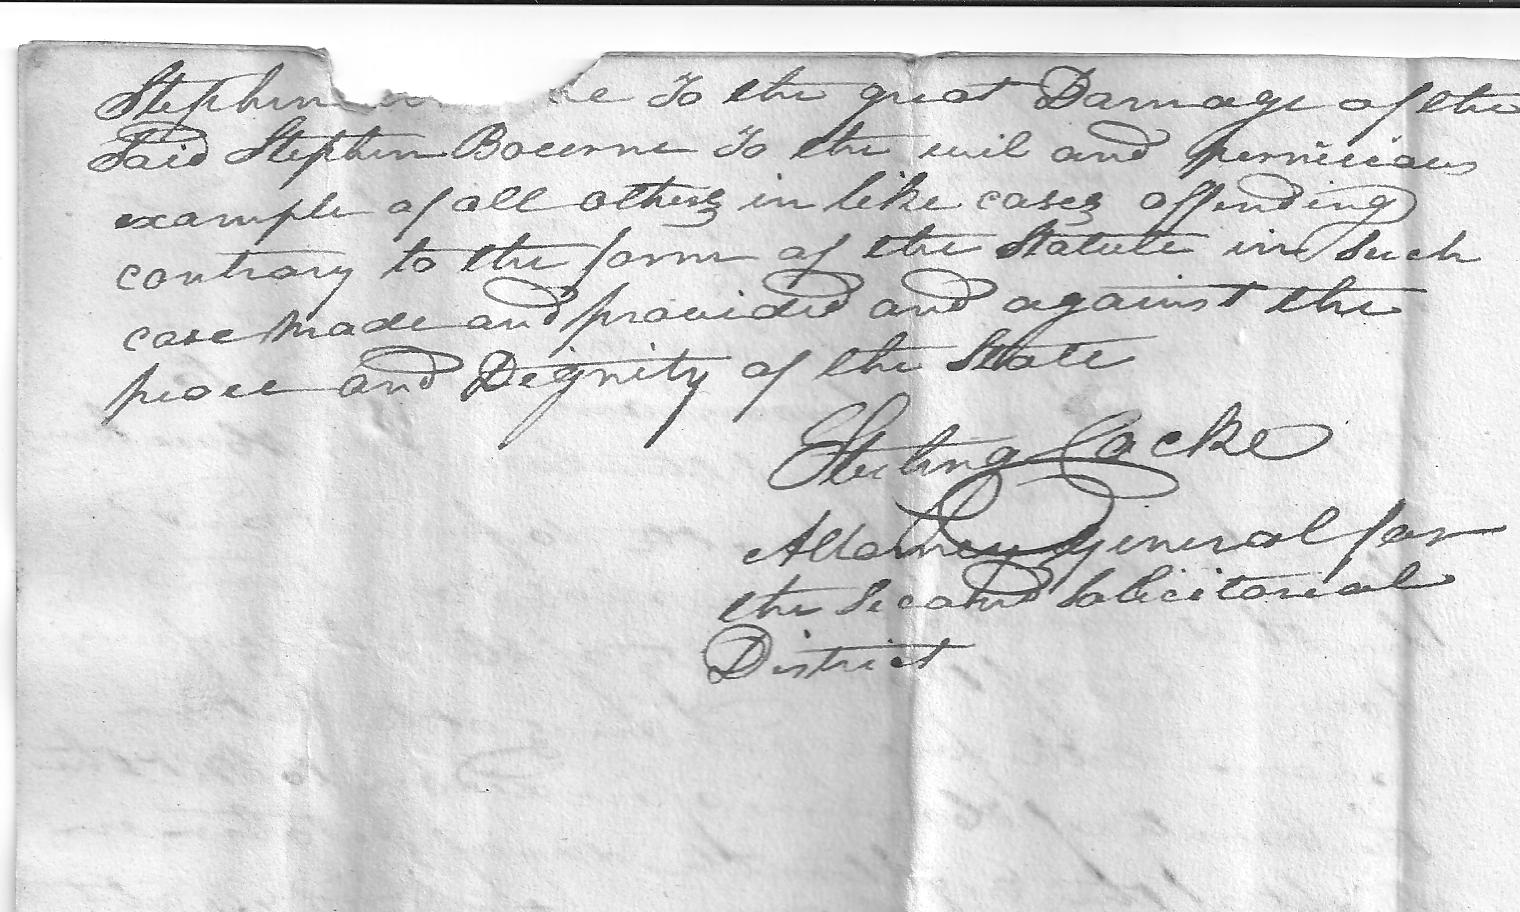 Lumbee Indians and Goins Family: Hawkins County, TN Early Records